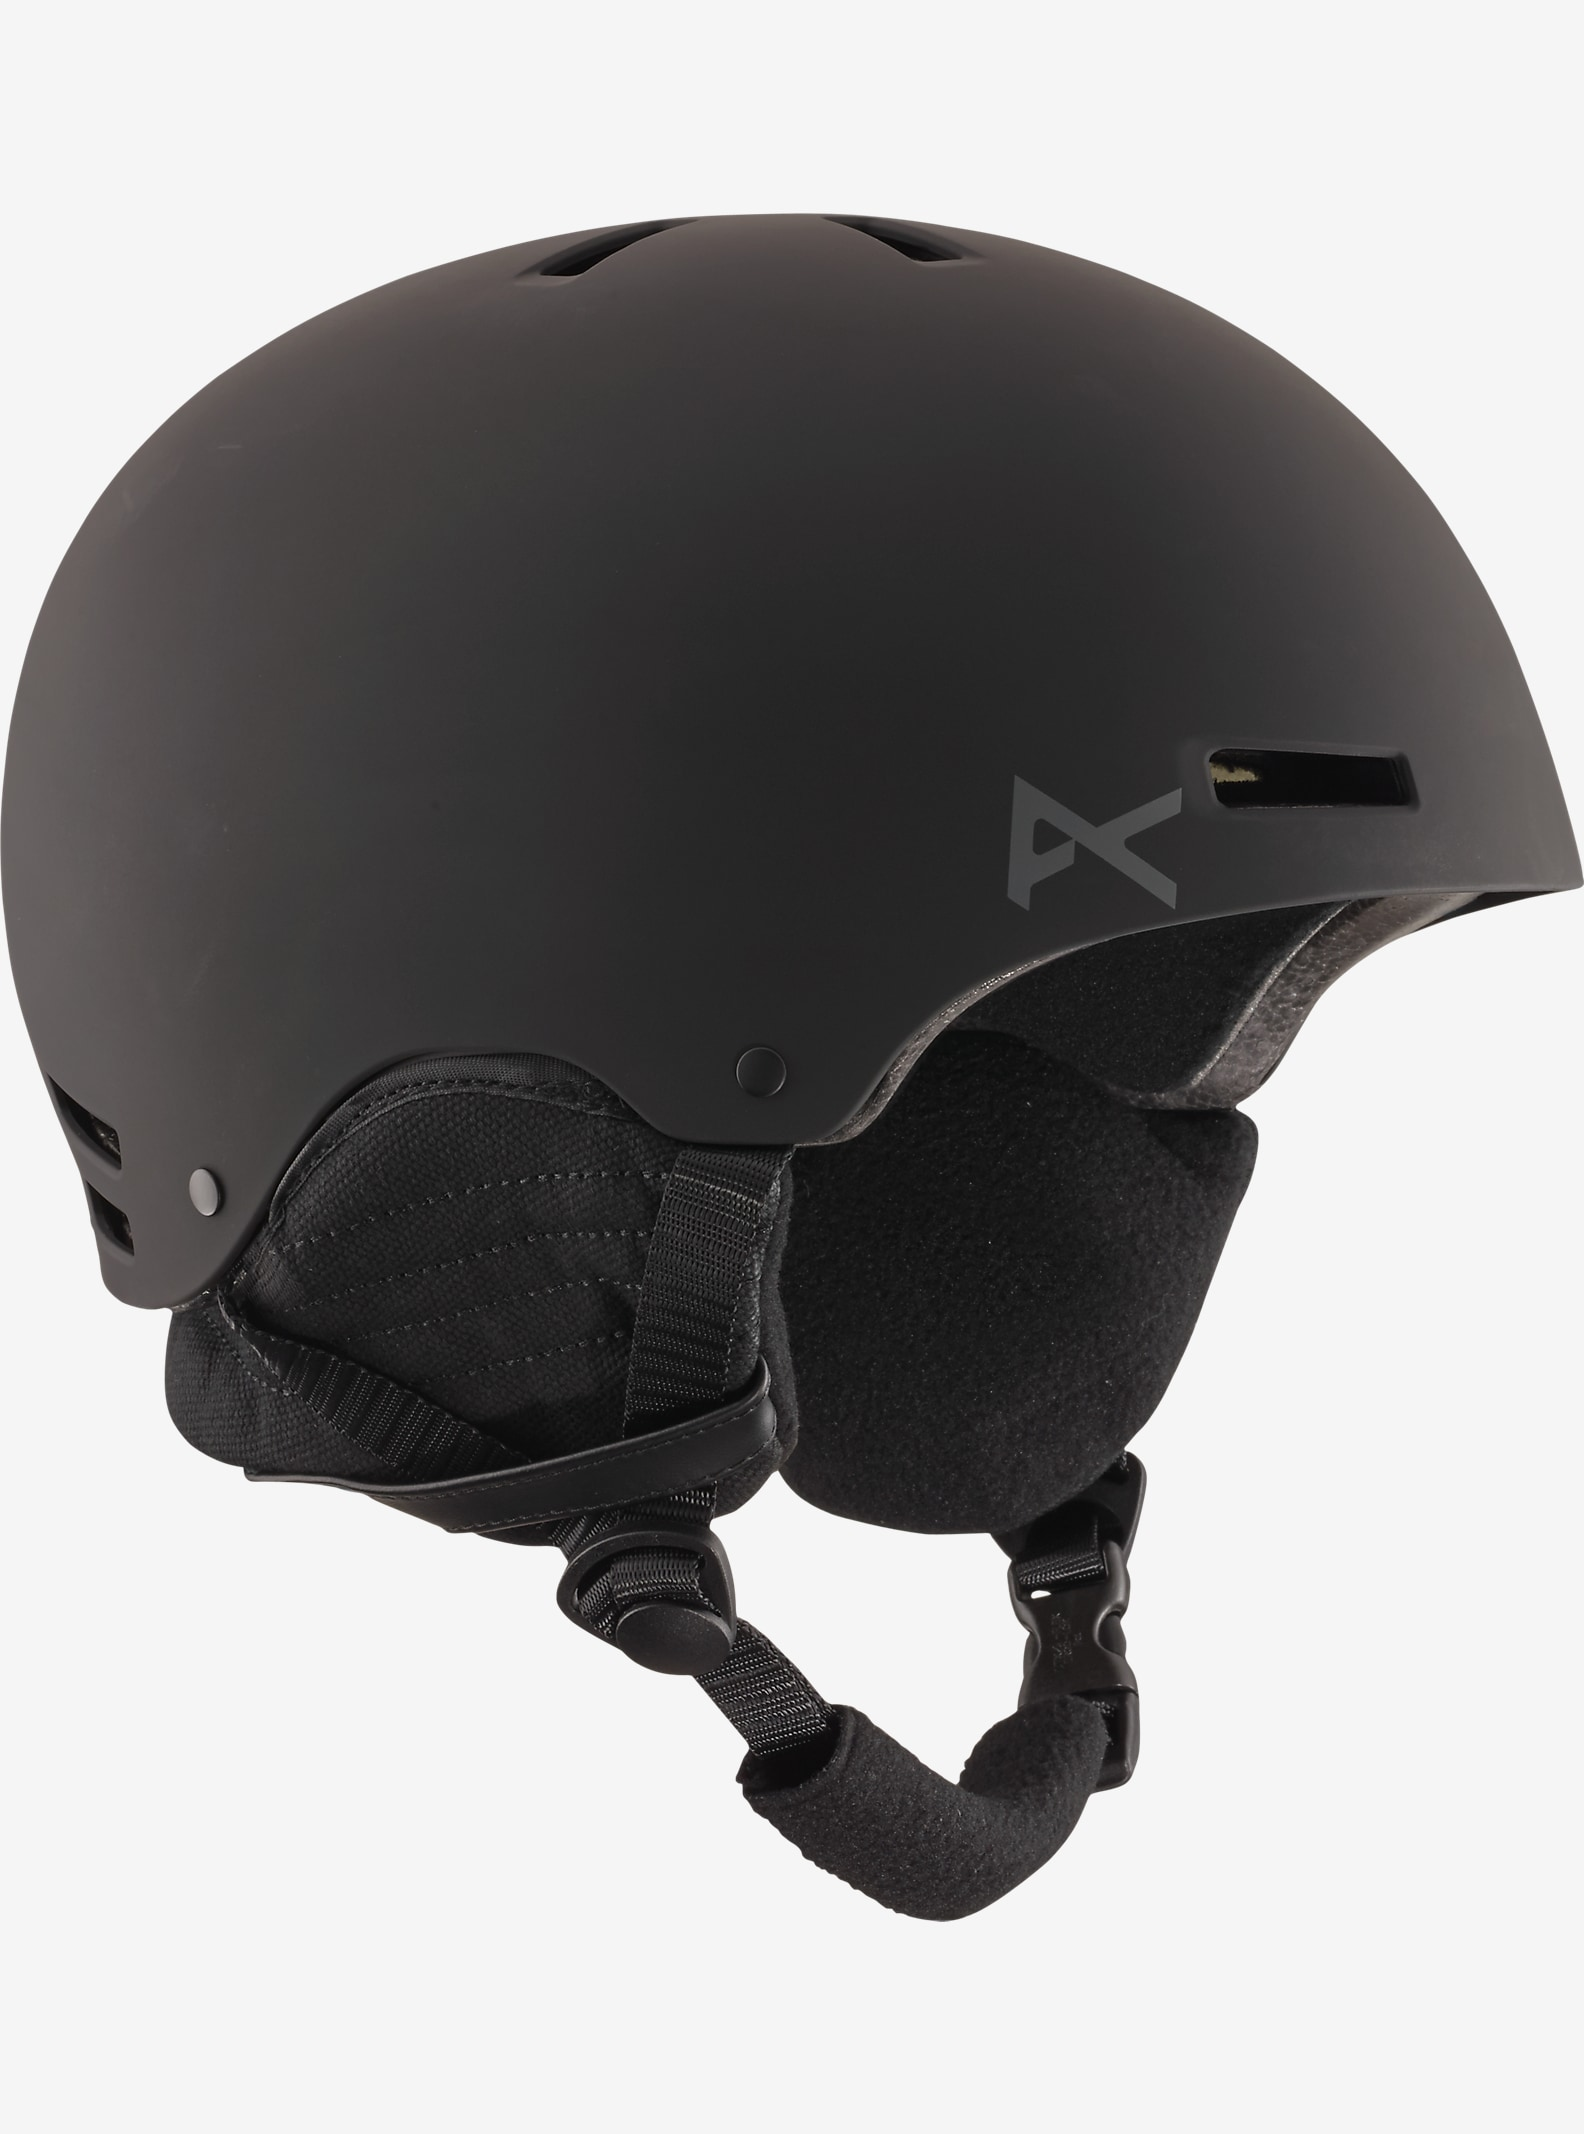 Men's Anon Raider Helmet shown in Black